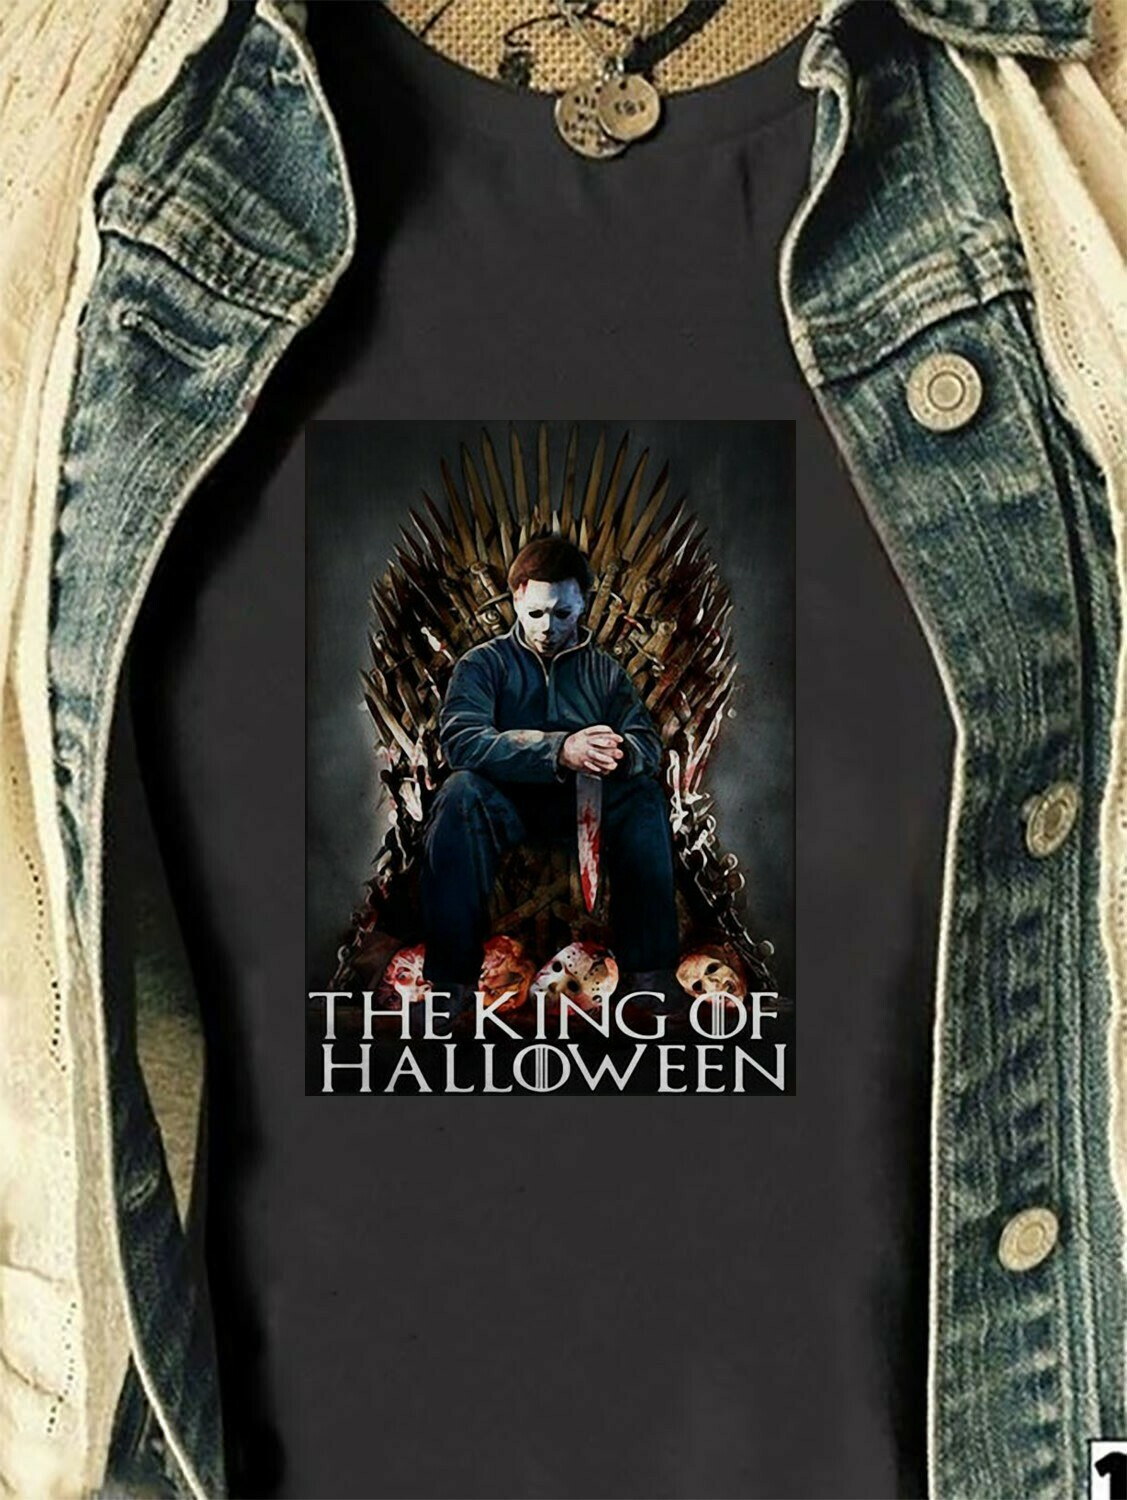 Michael Myers The King Of Halloween Cosplay Game of Thrones Gifts For Fan Movie Villains Halloween Horror Movie Mashup Squad T-Shirt Long Sleeve Sweatshirt Hoodie Jolly Family Gifts